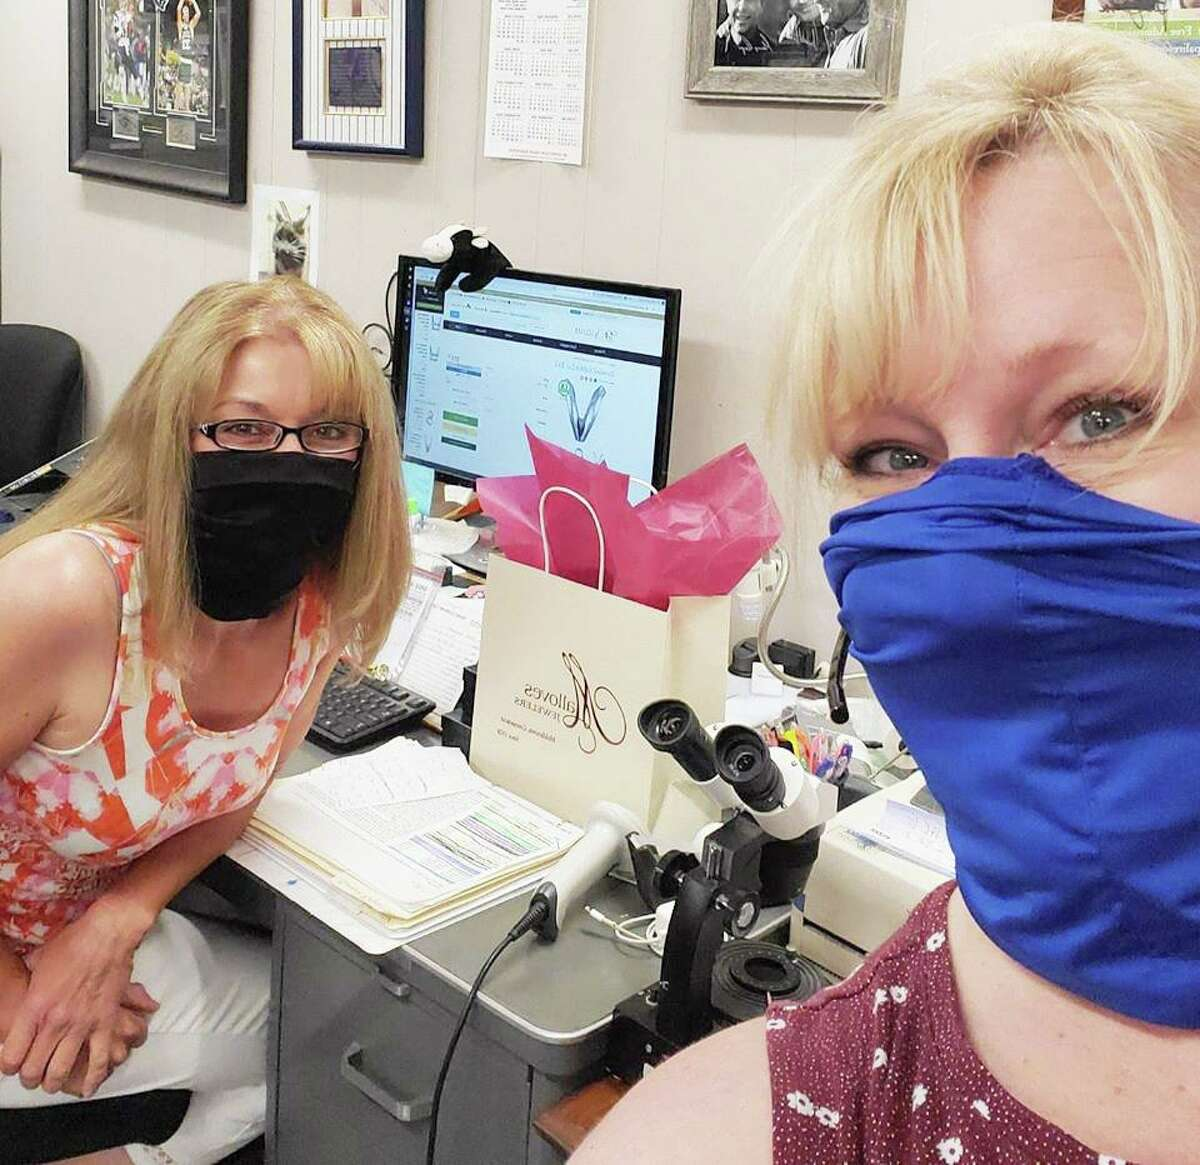 Employees of Malloves Jewelers, at 404 Main St., Middletown, invite customers to the store, now open for reduced hours due to the COVID-19 outbreak. Staff are wearing masks and cleaning every piece of jewelry tried on by customers after they're done, among other safety measures.